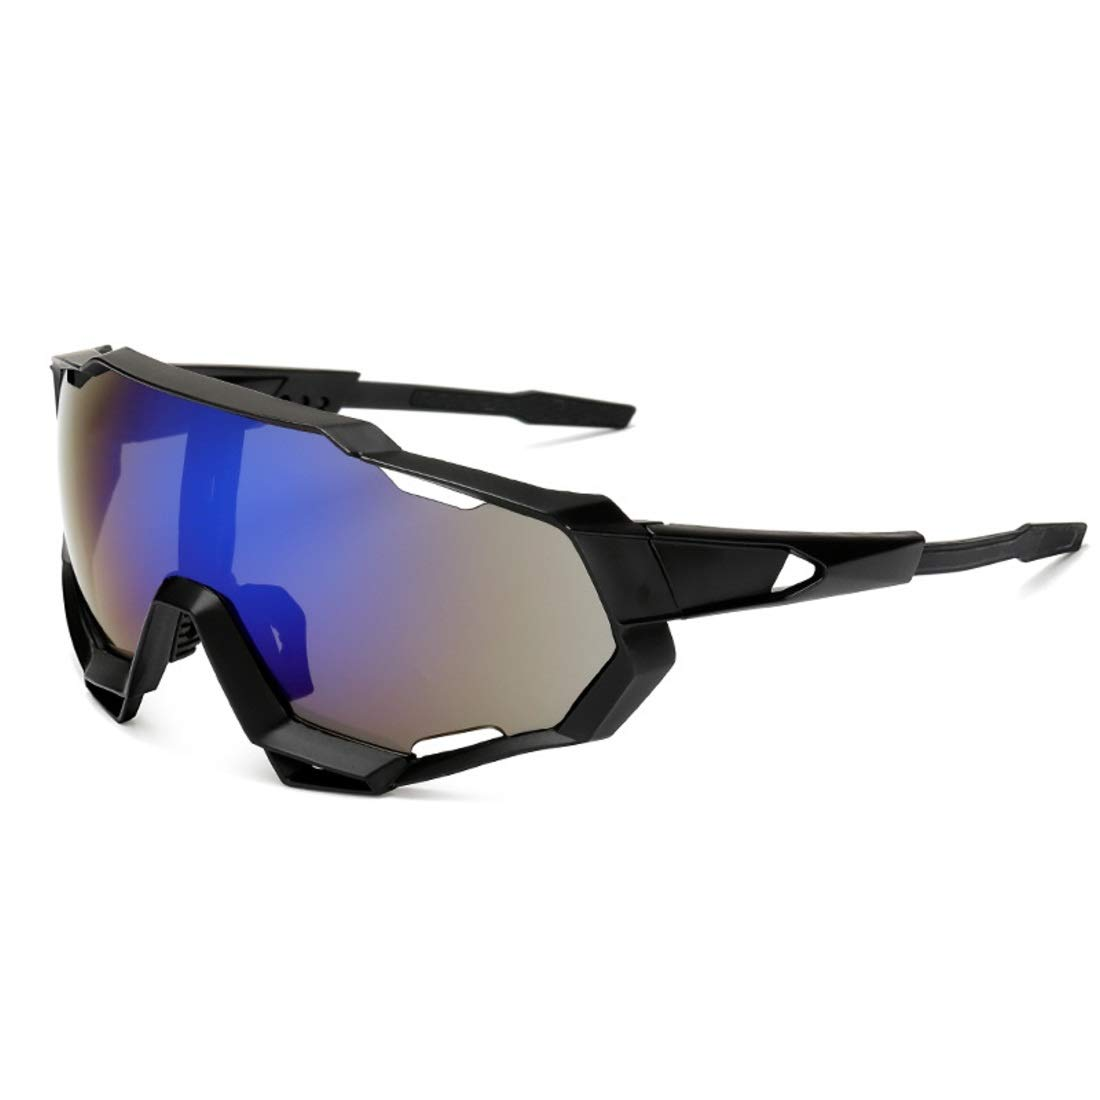 BAOYIT Cycling Glasses Outdoor Sports Windproof Mountain Bike Sunglasses Men and Women Running Accessories (Color : E) by BAOYIT